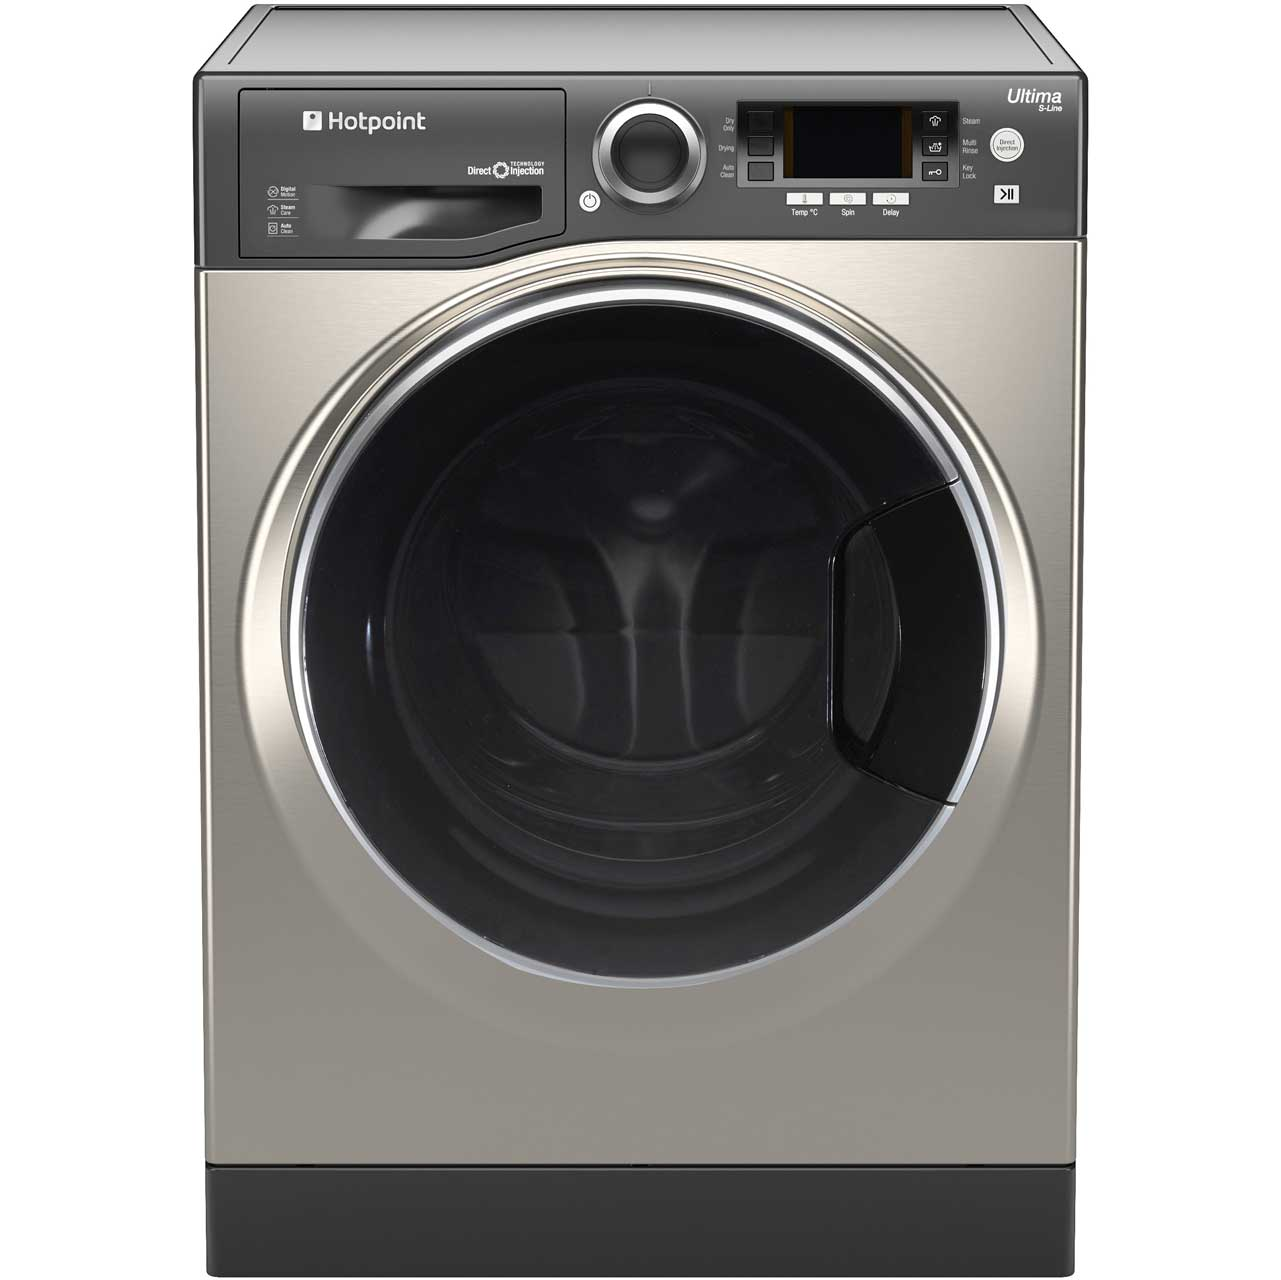 Hotpoint Ultima SLine RD966JGD Free Standing Washer Dryer in Graphite